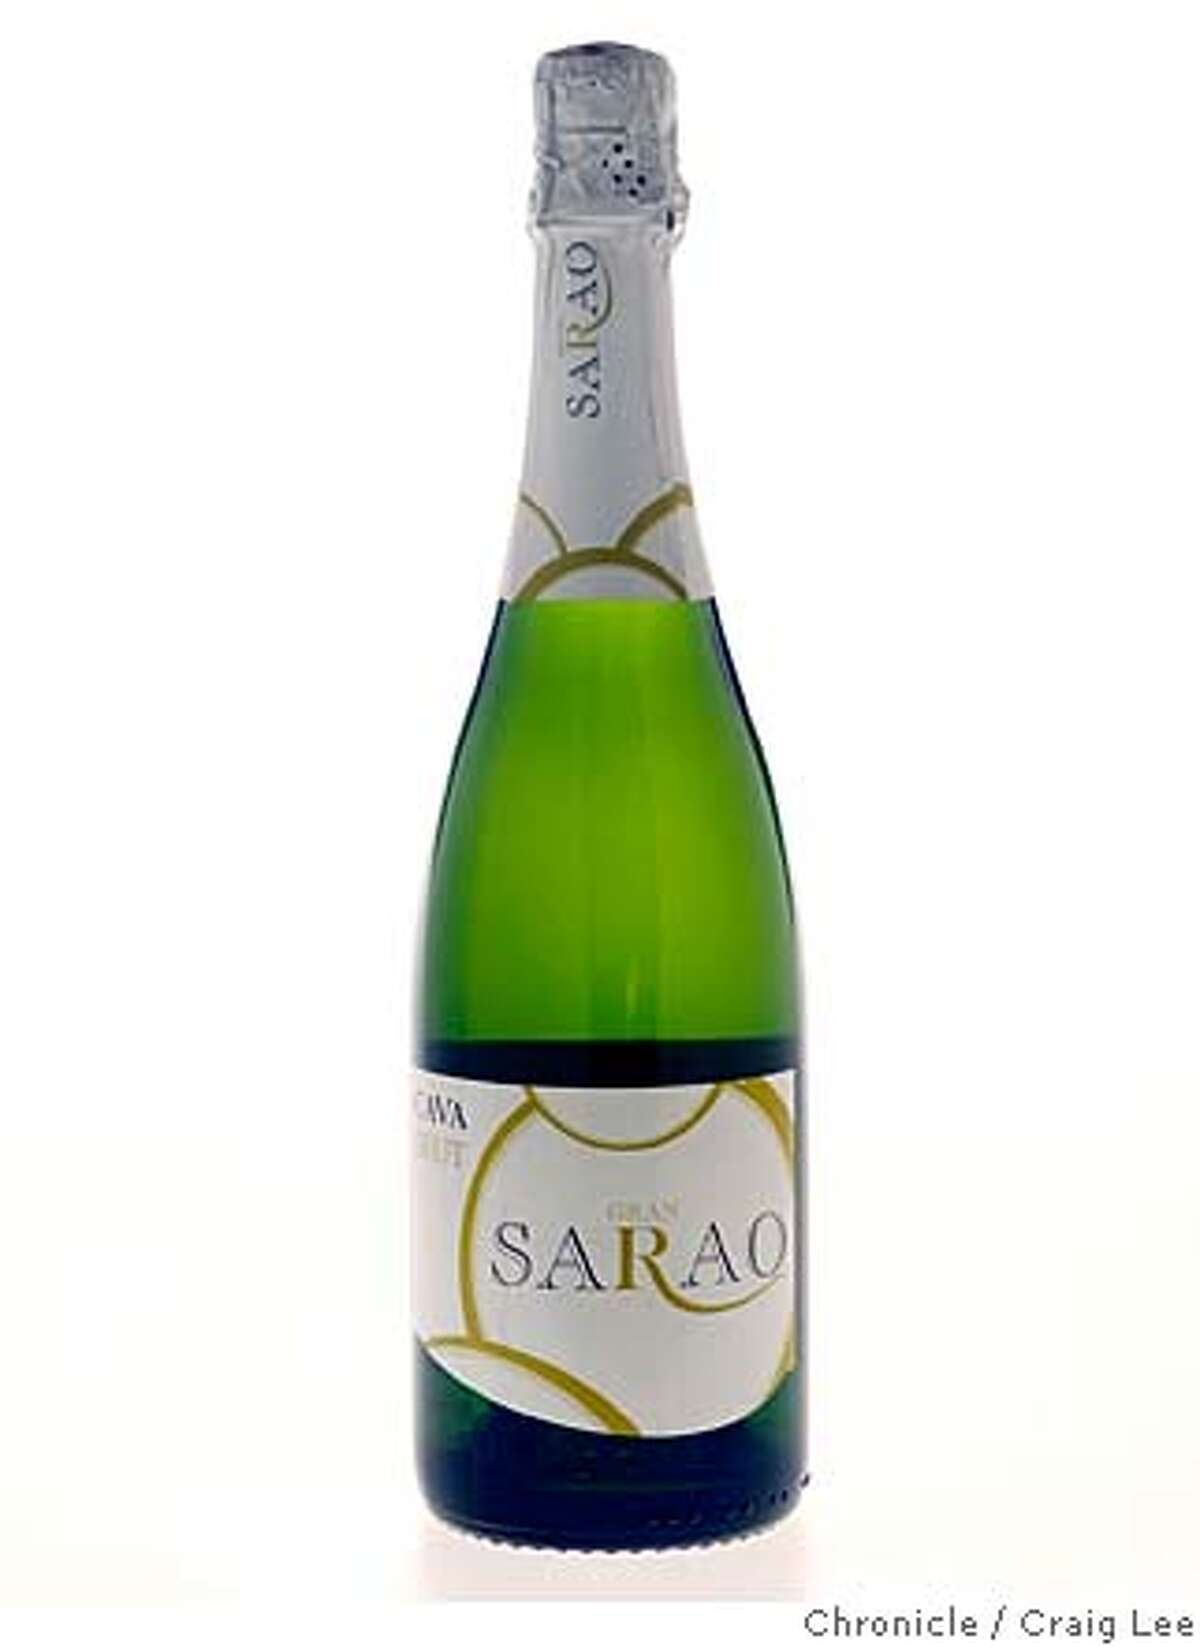 BUBBLY30_bottles_007_cl.JPG Photo of bottle of sparkling wine for Wine section Nov. 30 issue on sparkling wine. Photo of Gran Sarao Cava Brut. on 11/16/07 in San Francisco. photo by Craig Lee / The Chronicle MANDATORY CREDIT FOR PHOTOG AND SF CHRONICLE/NO SALES-MAGS OUT